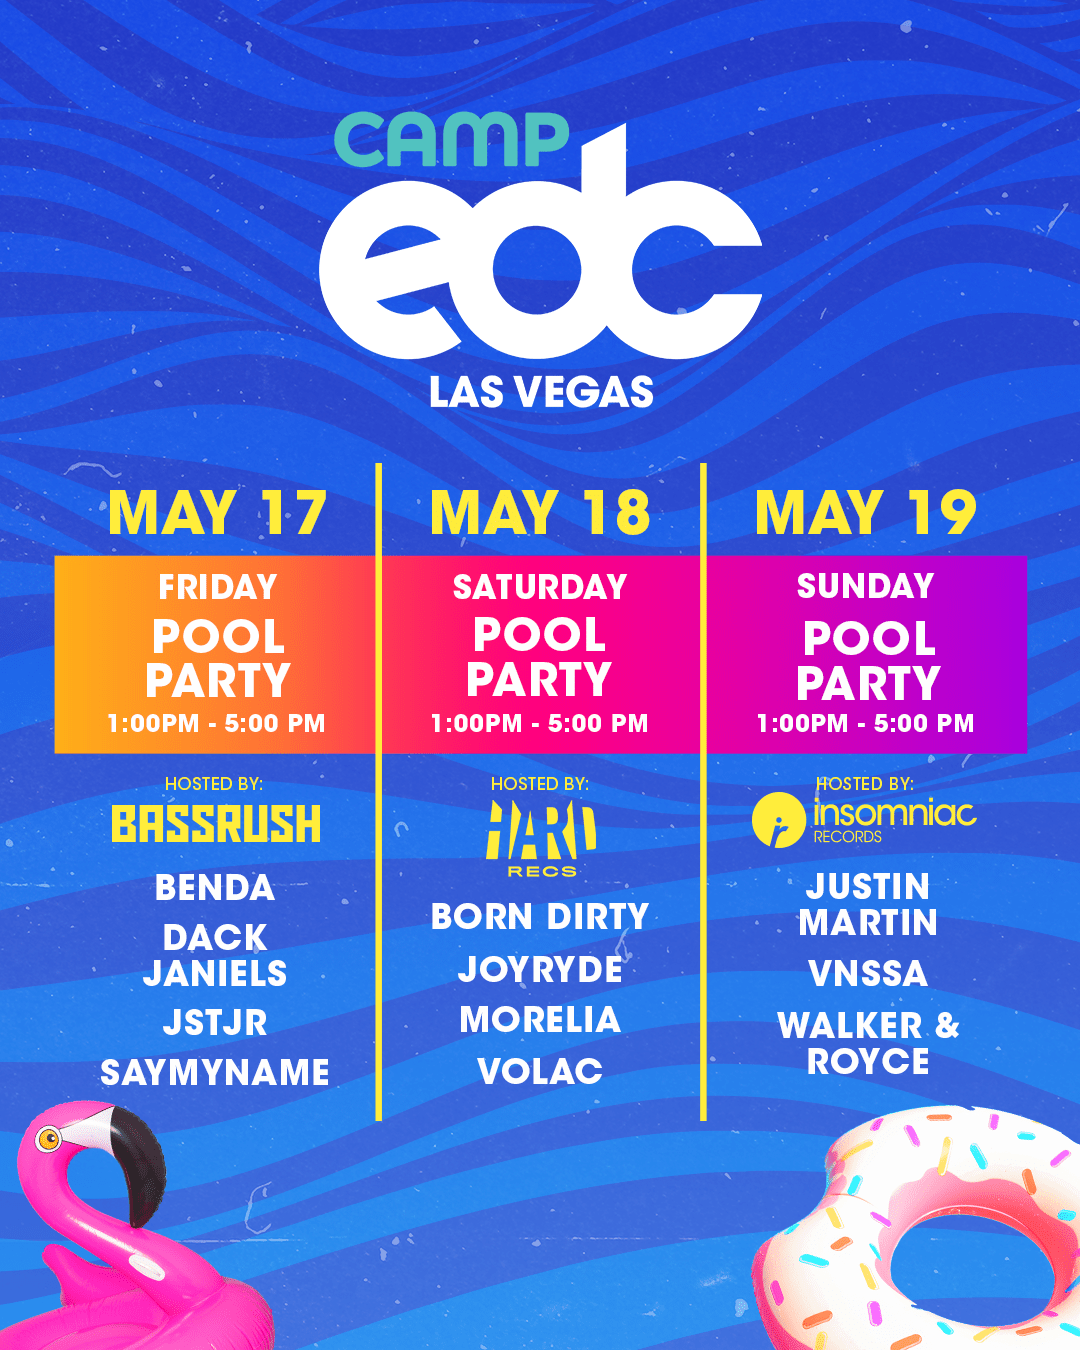 Insomniac Announces Camp EDC Pool Party Lineups for Electric